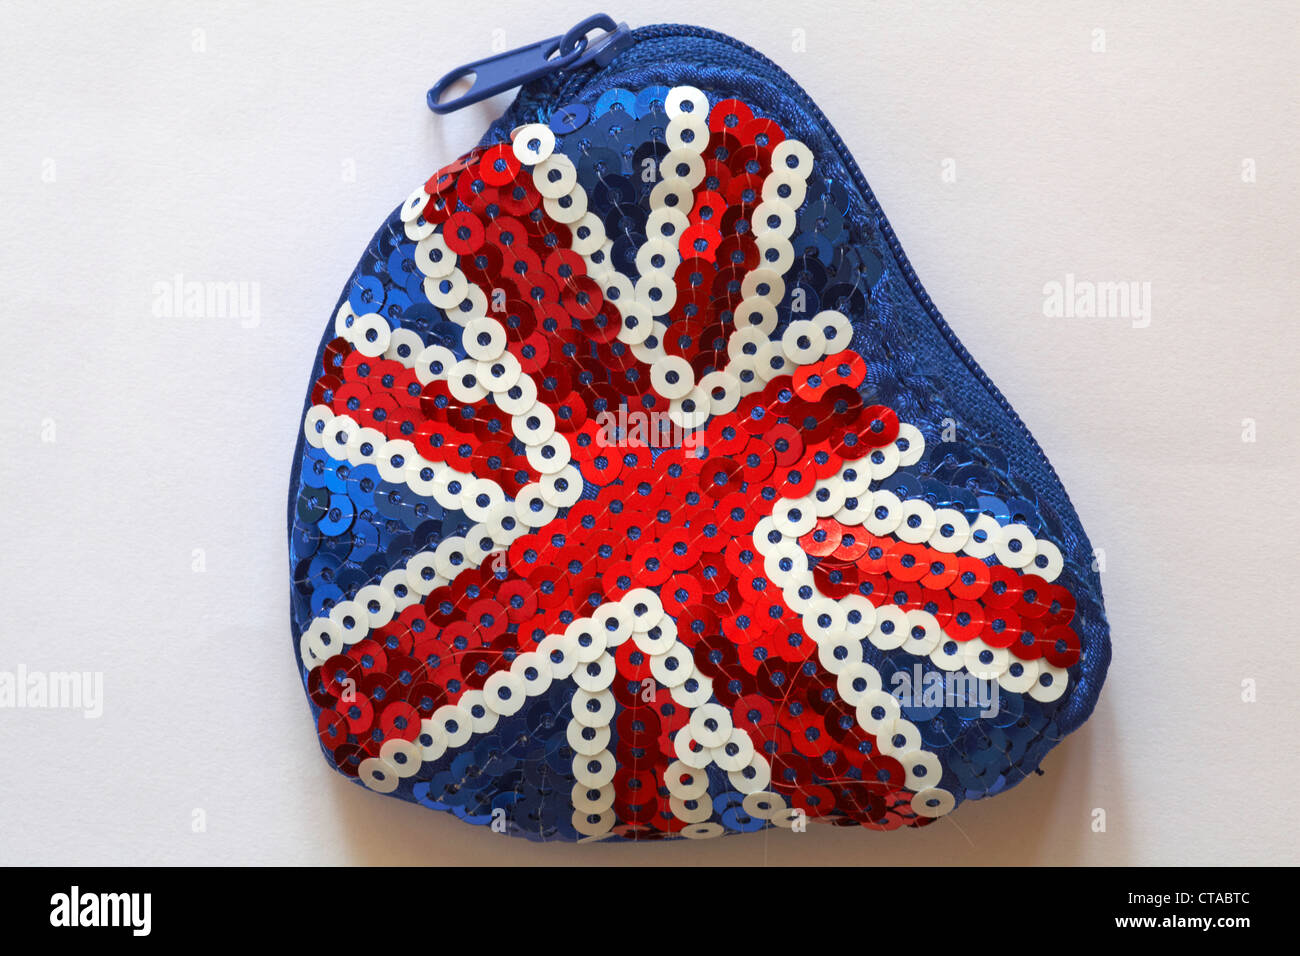 Red White And Blue Sequined Union Jack Purse Isolated On White